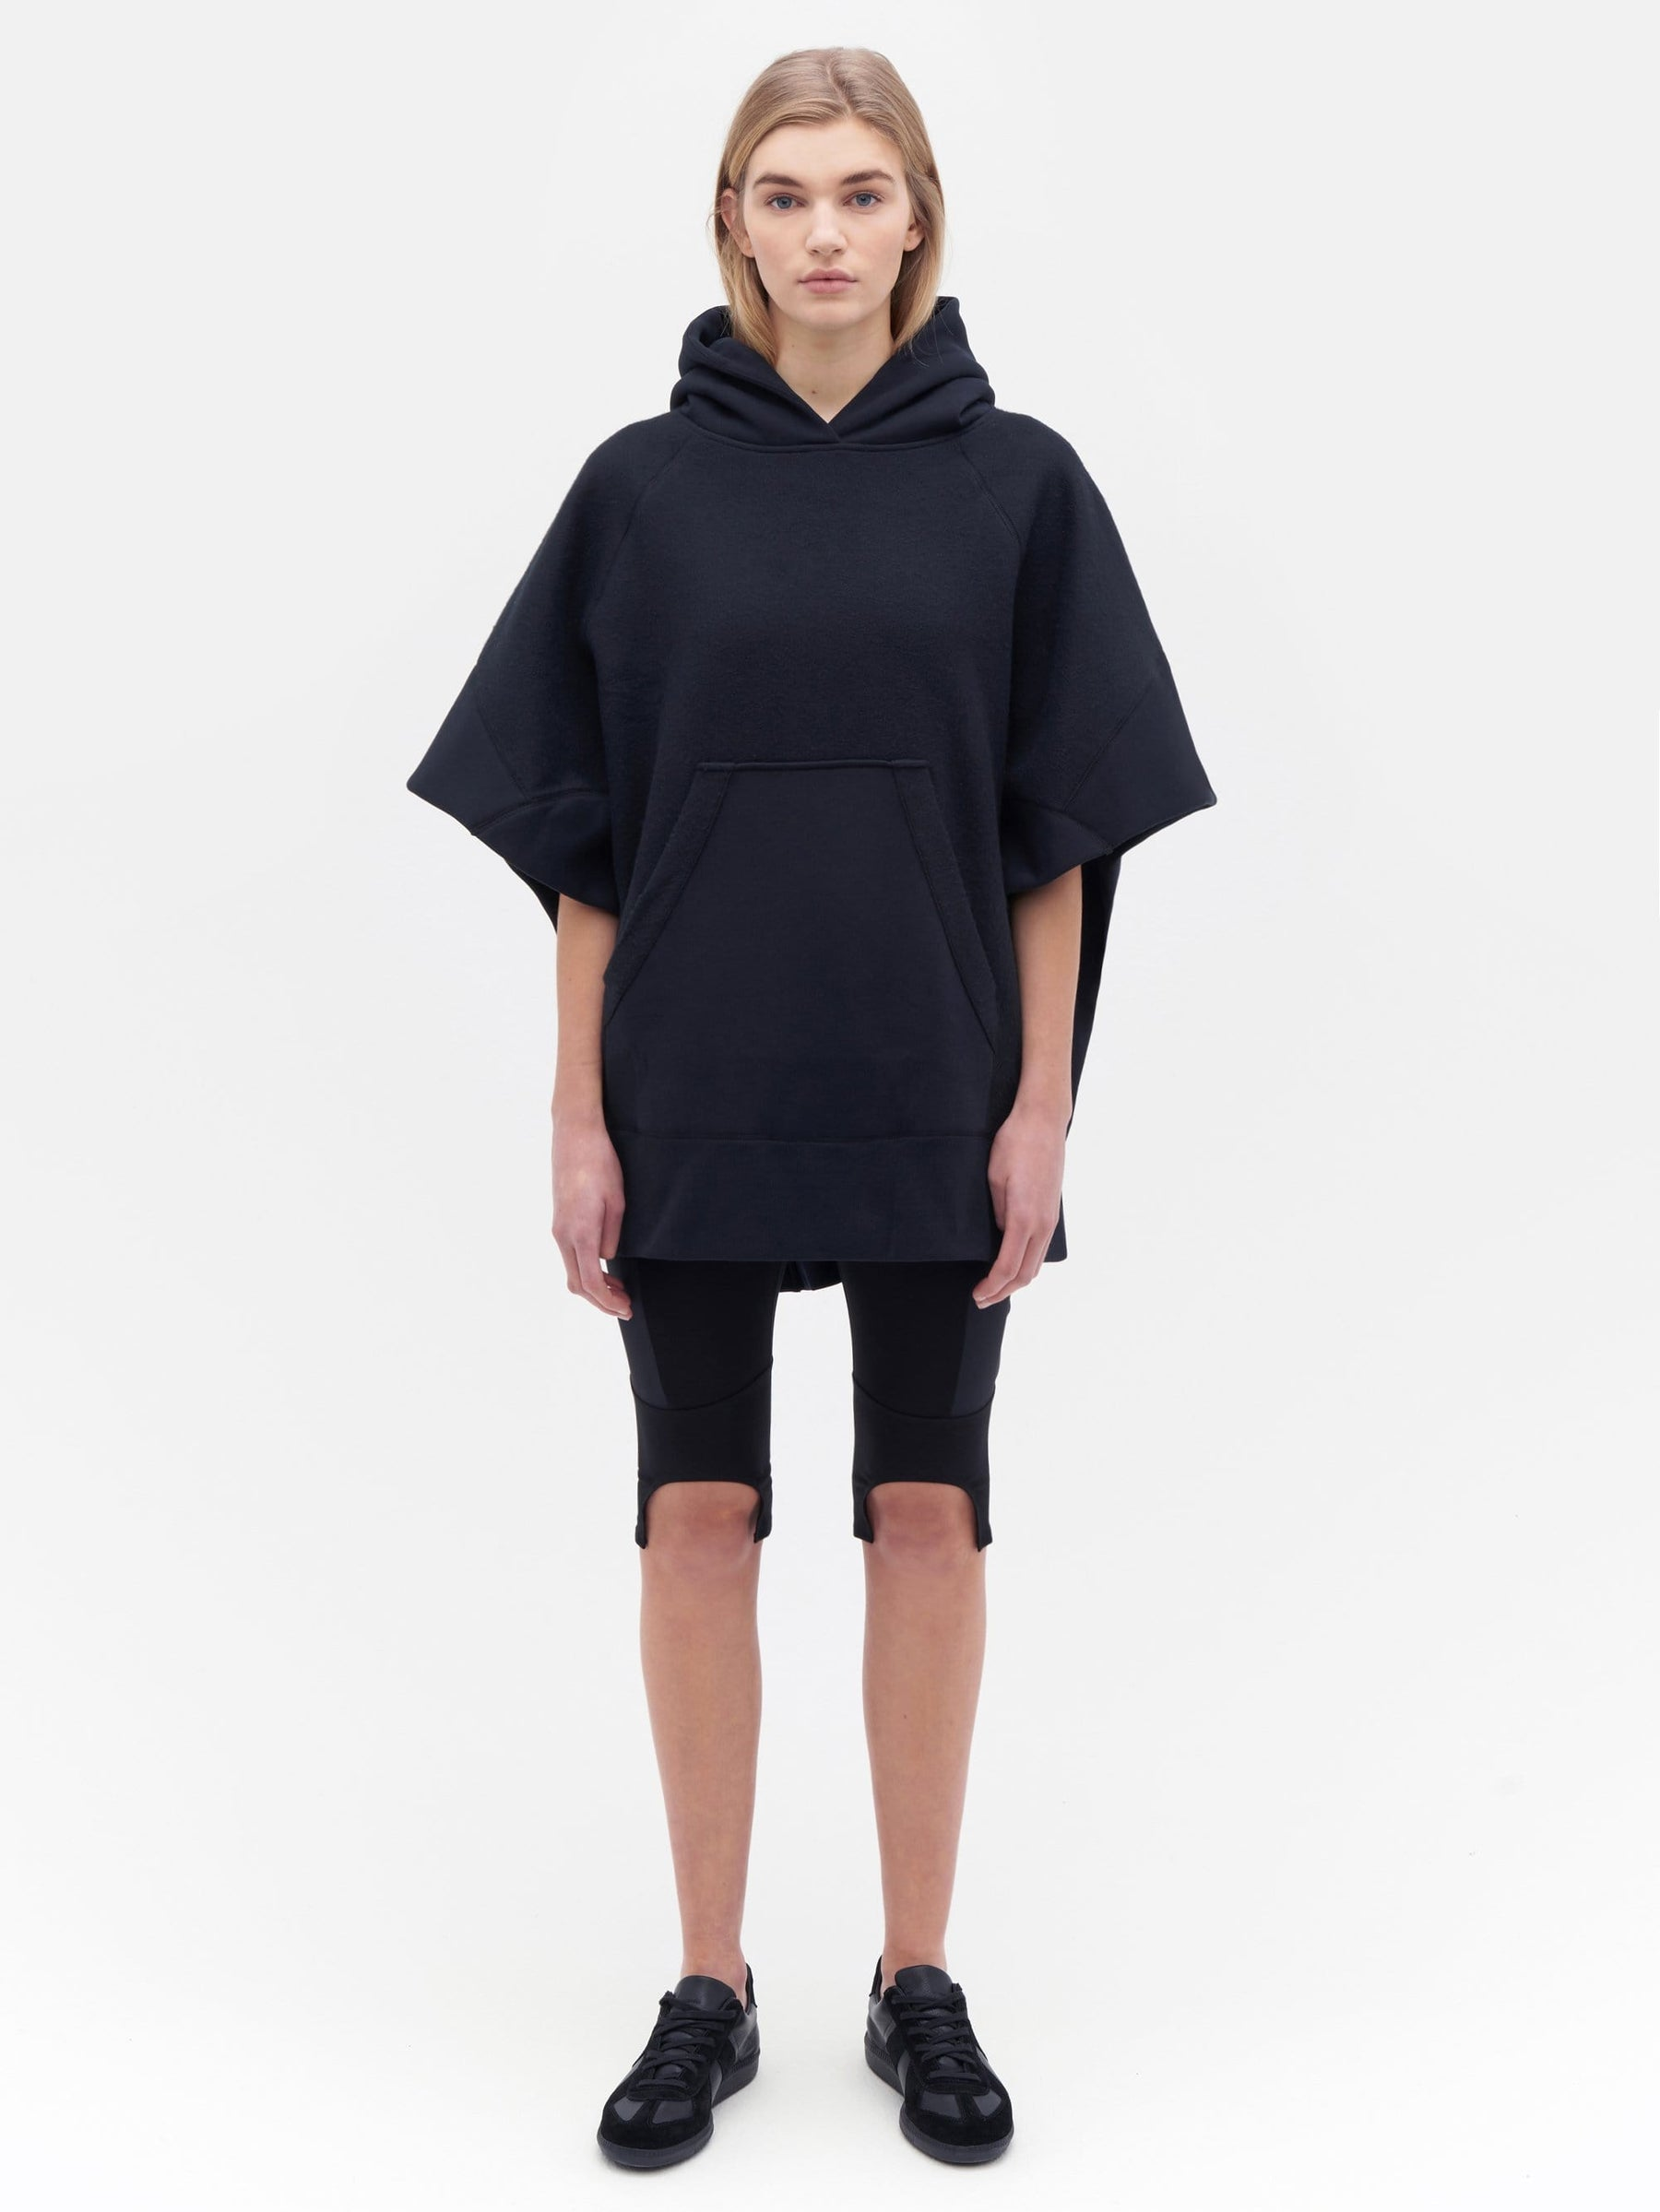 Sweatshirt Poncho Black